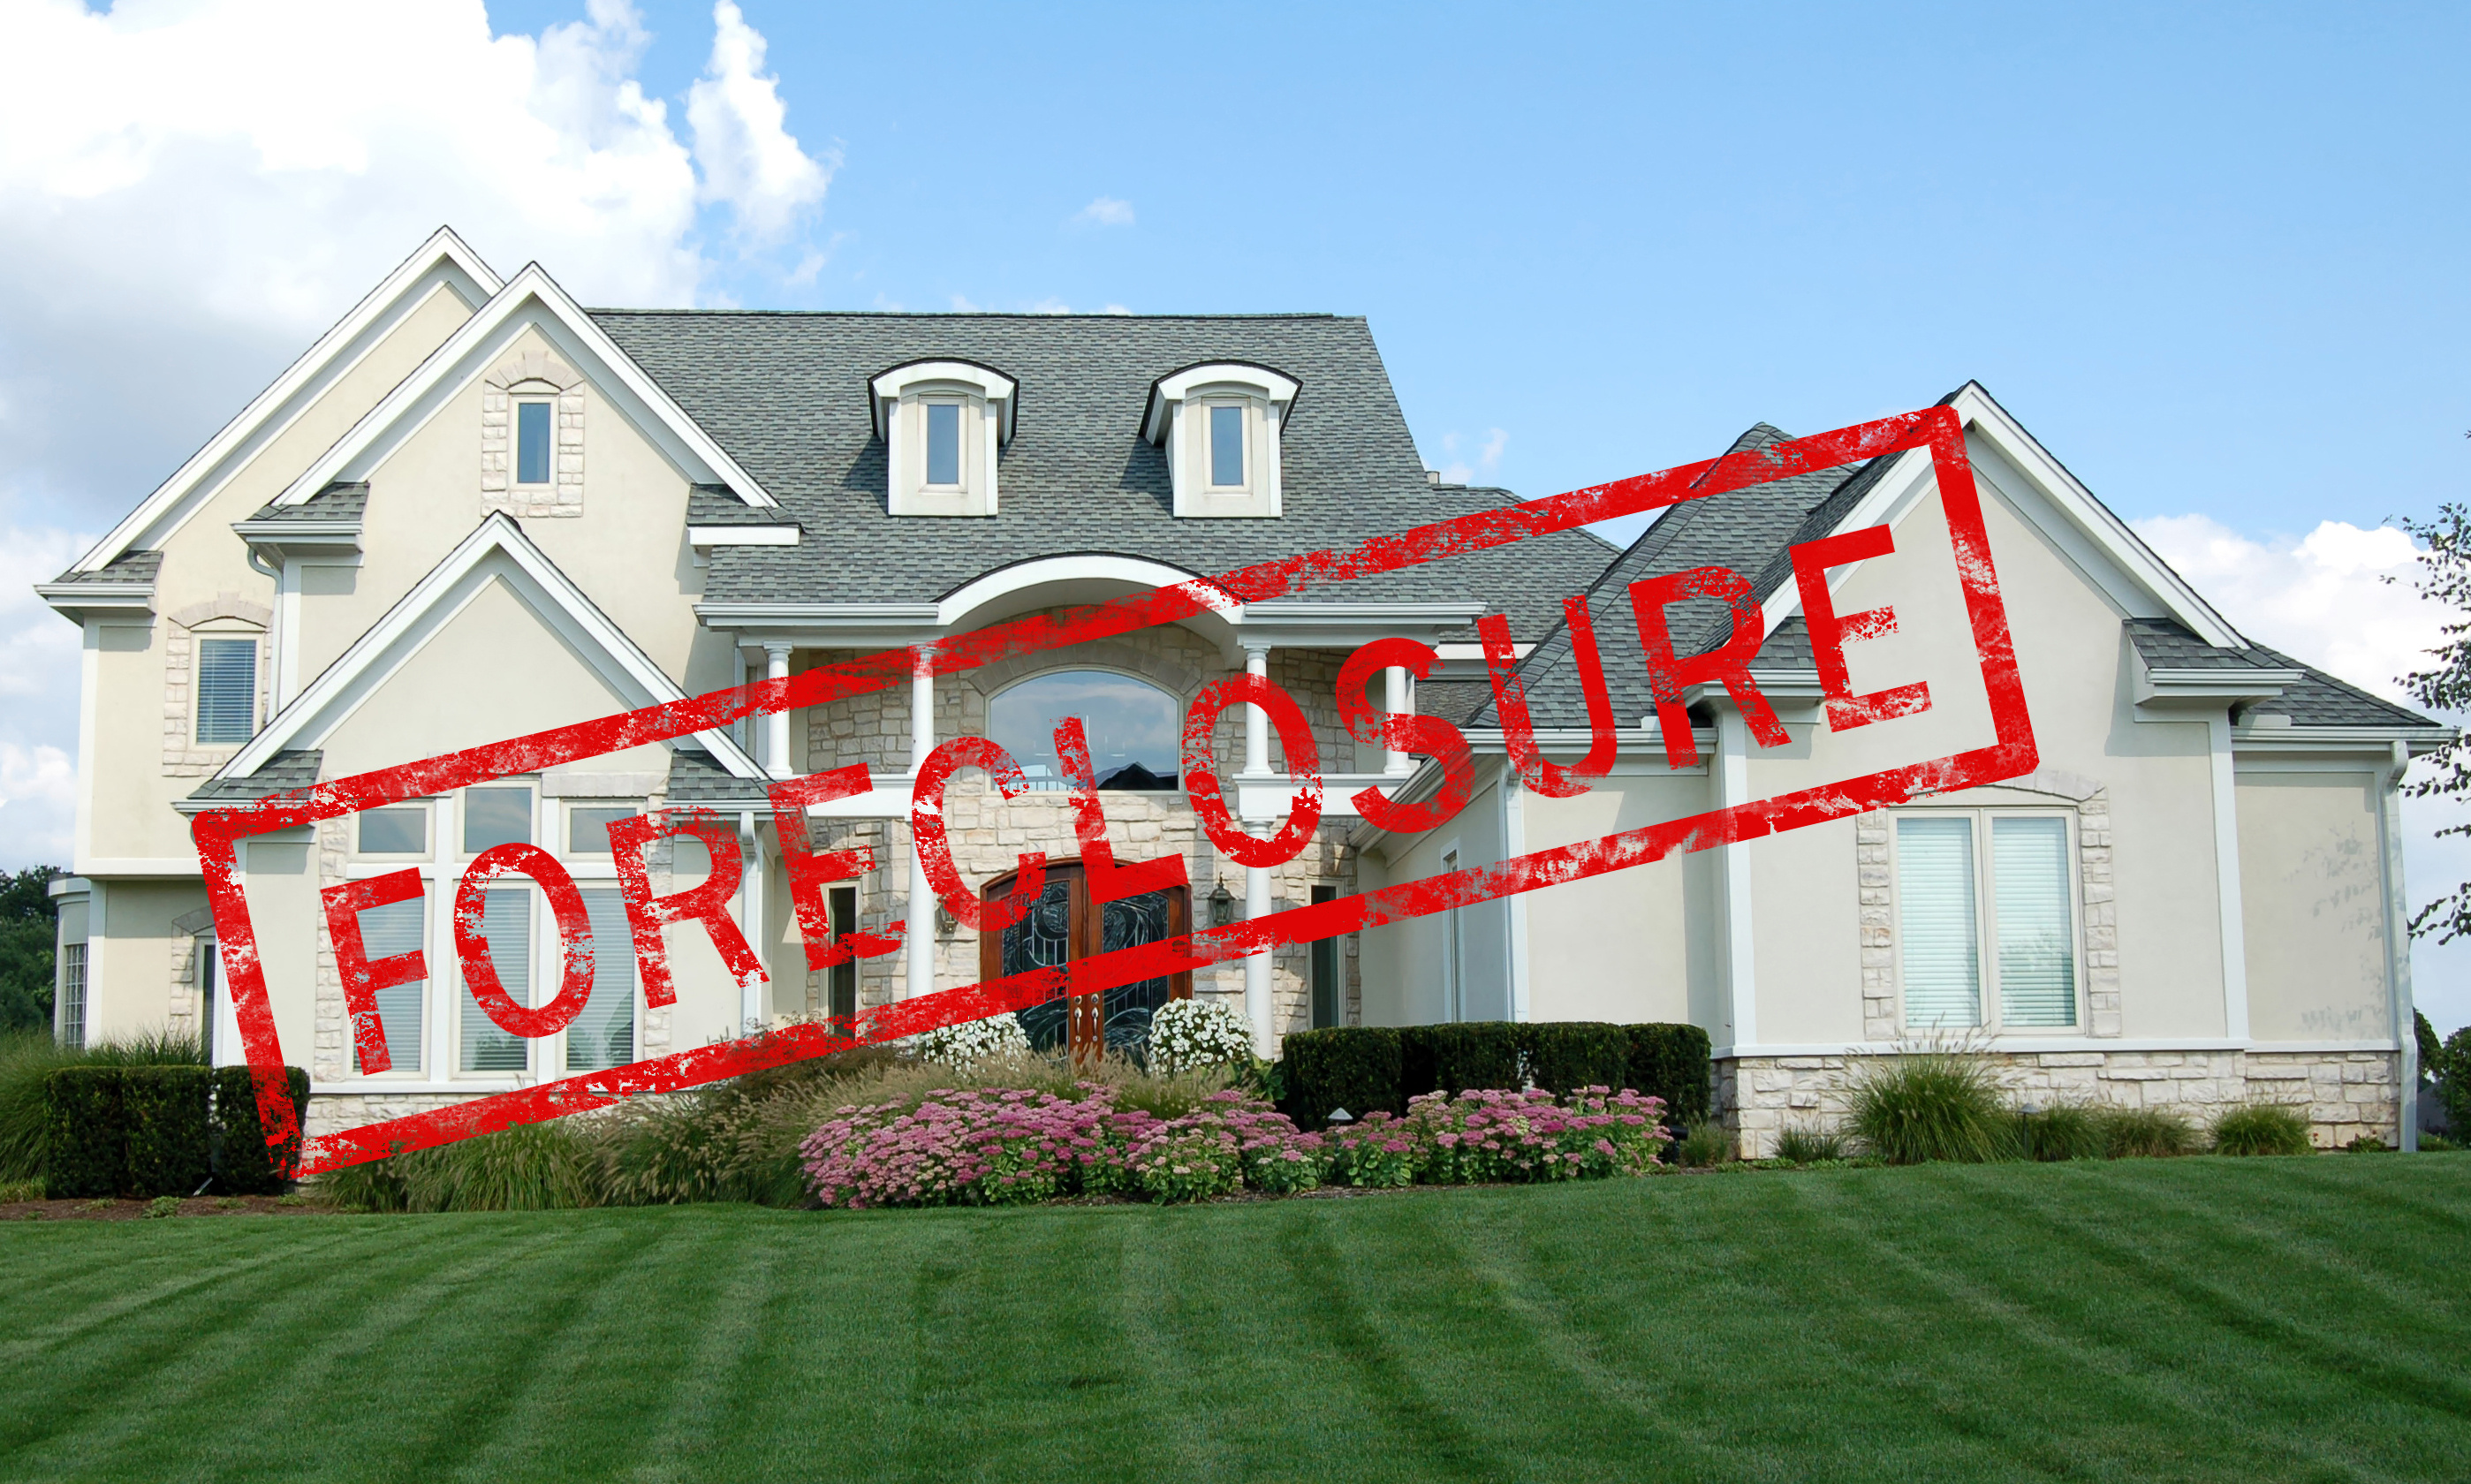 Call Allatoona Appraisal when you need valuations of Cobb foreclosures